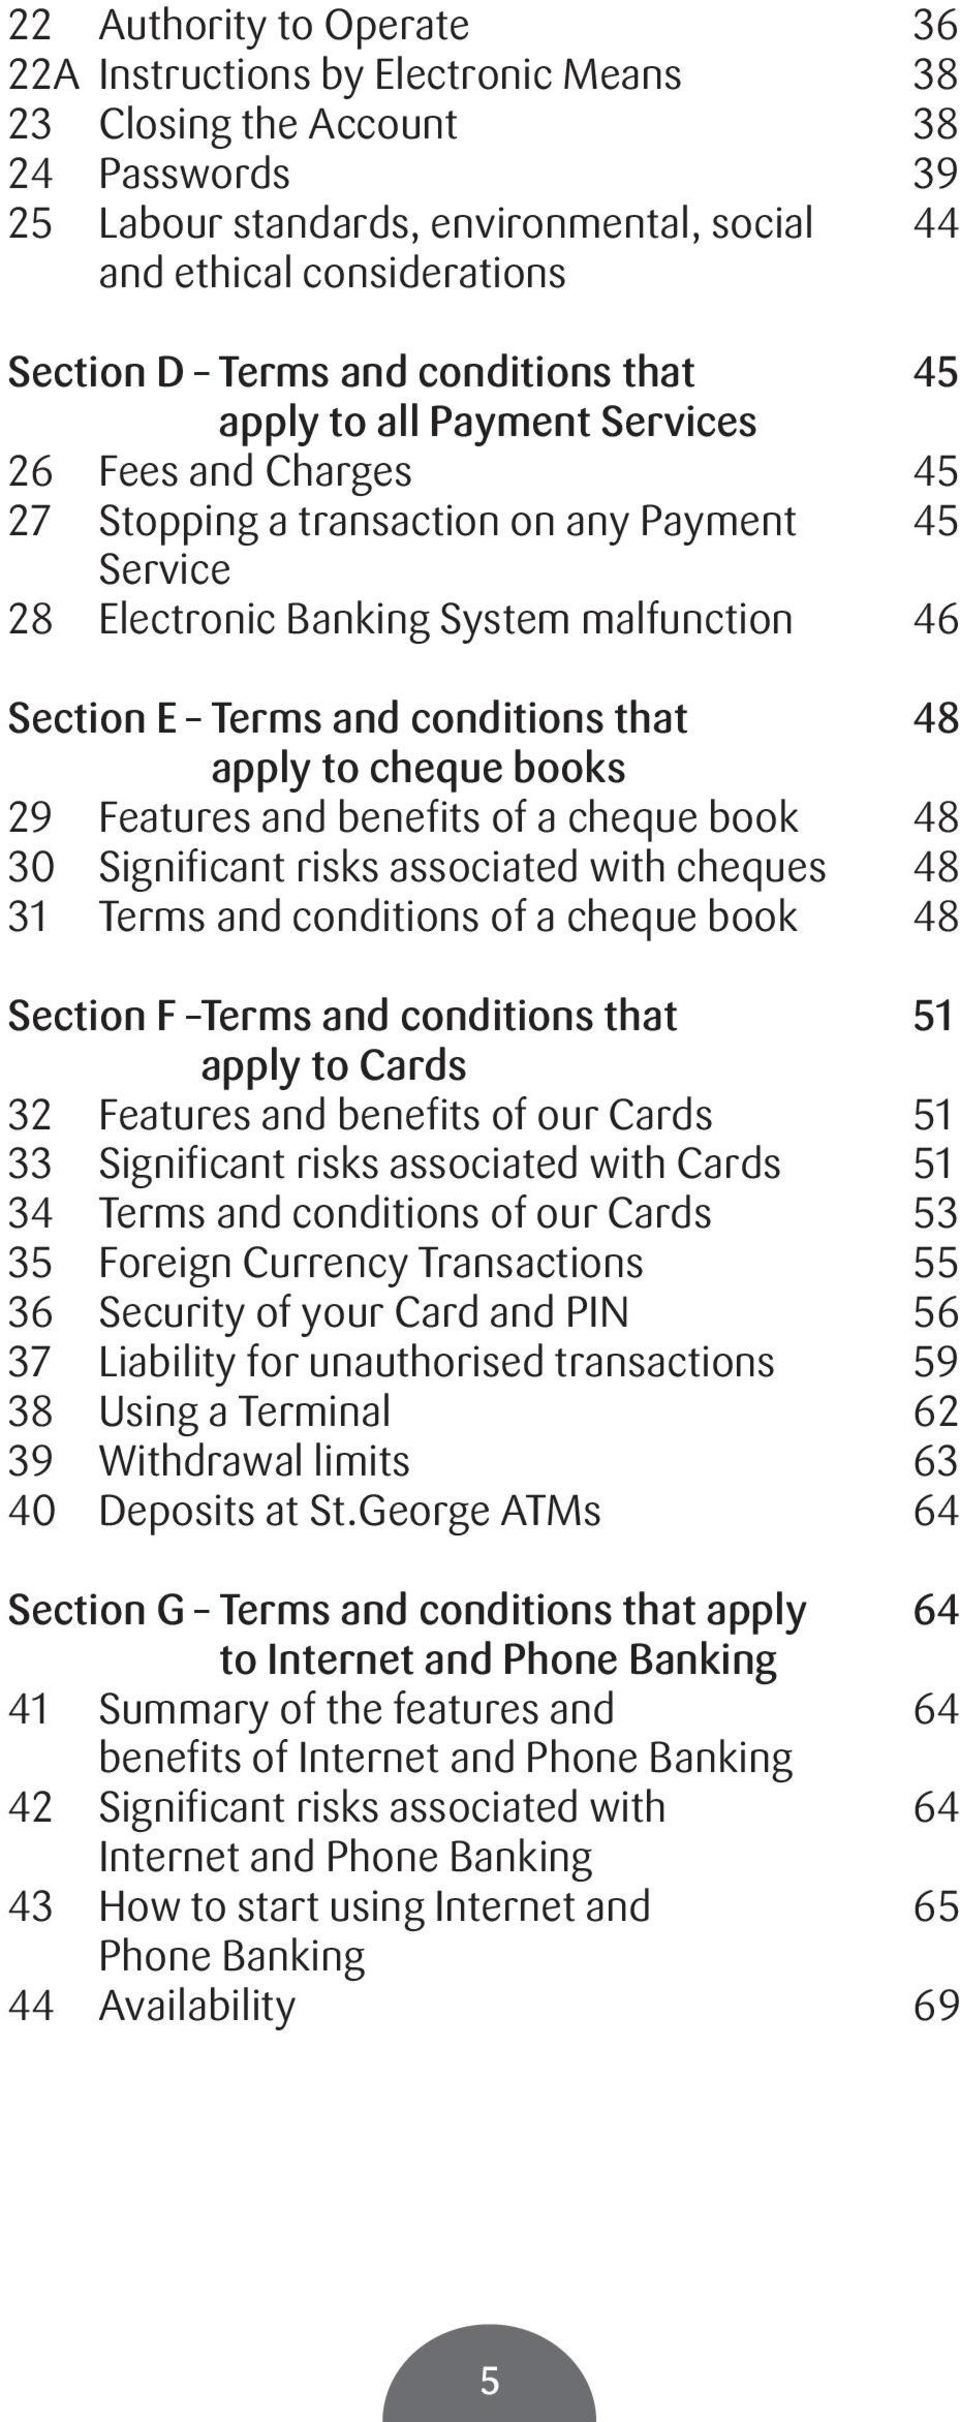 conditions that 48 apply to cheque books 29 Features and benefits of a cheque book 48 30 Significant risks associated with cheques 48 31 Terms and conditions of a cheque book 48 Section F terms and